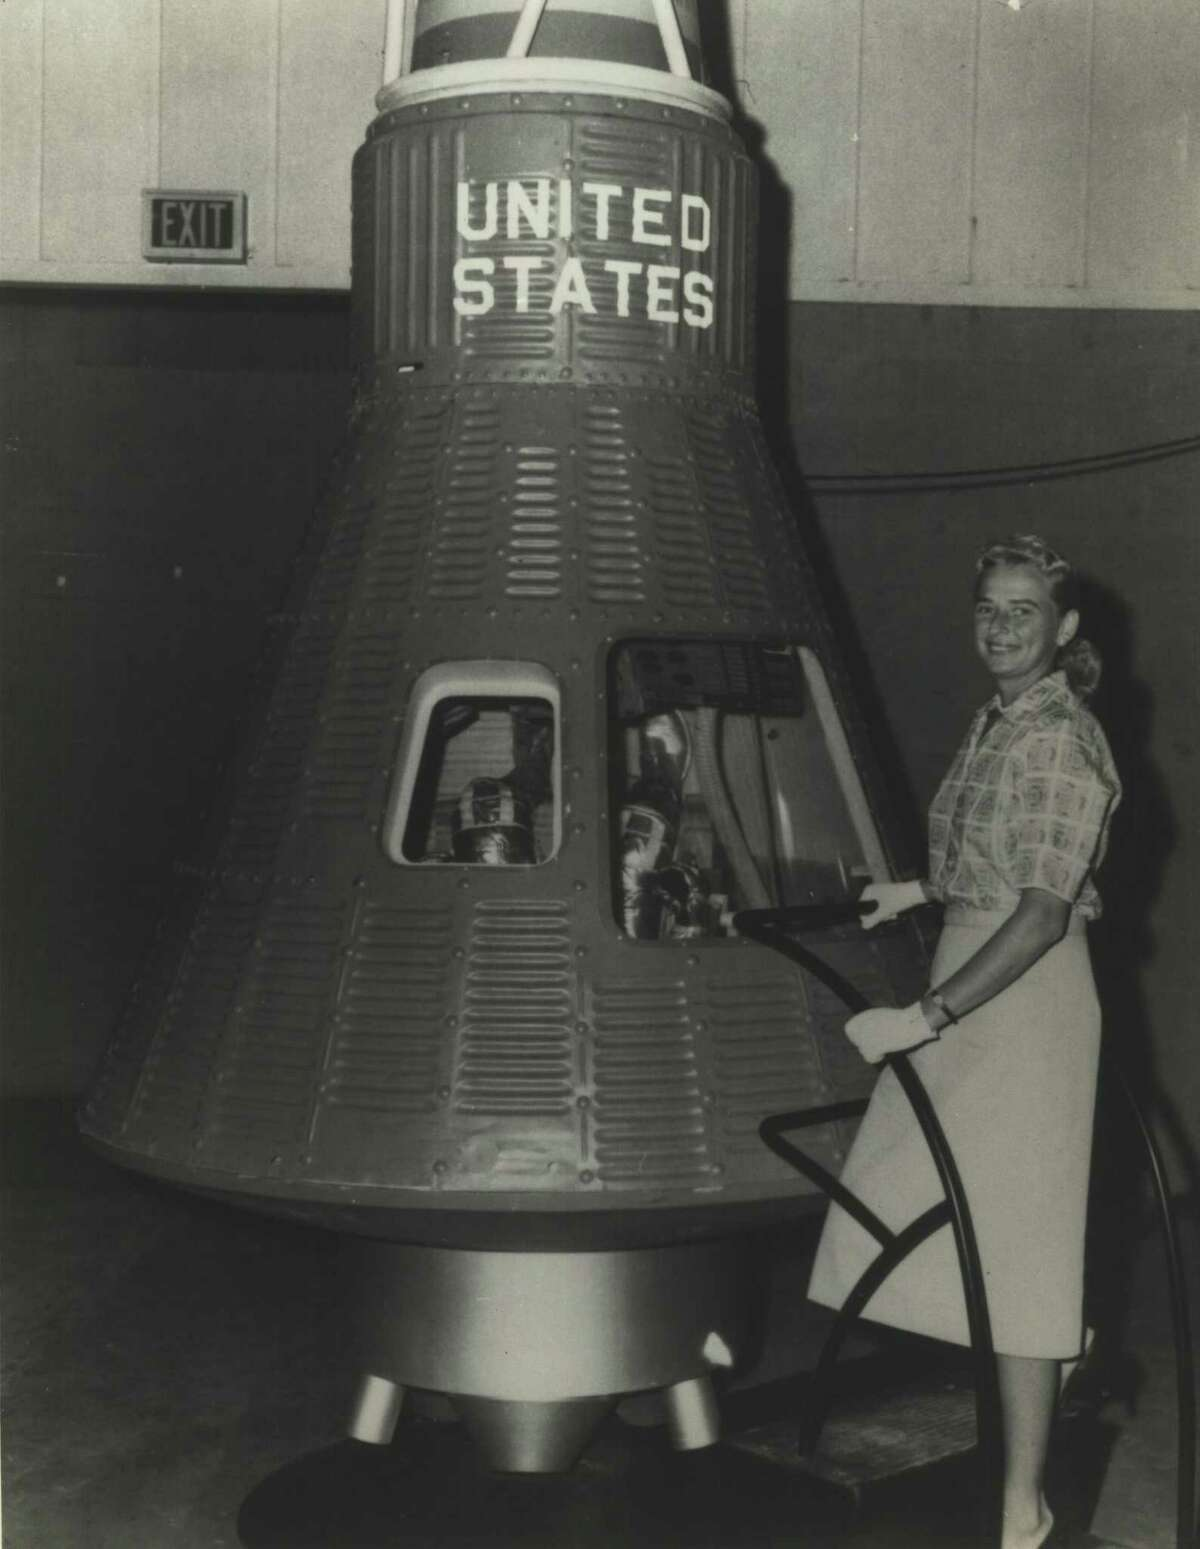 Sometimes referred to as America's first woman astronaut, pilot Jerrie Cobb was the first woman to pass the astronaut physical tests in NASA's Mercury program. She stands here by a prototype of a Mercury spacecraft. NASA abandoned plans for women astronauts, however, and Cobb never made it into space. She was one of the Mercury 13 - thirteen women tested to be astronauts until NASA shut down the program in the 1960s.